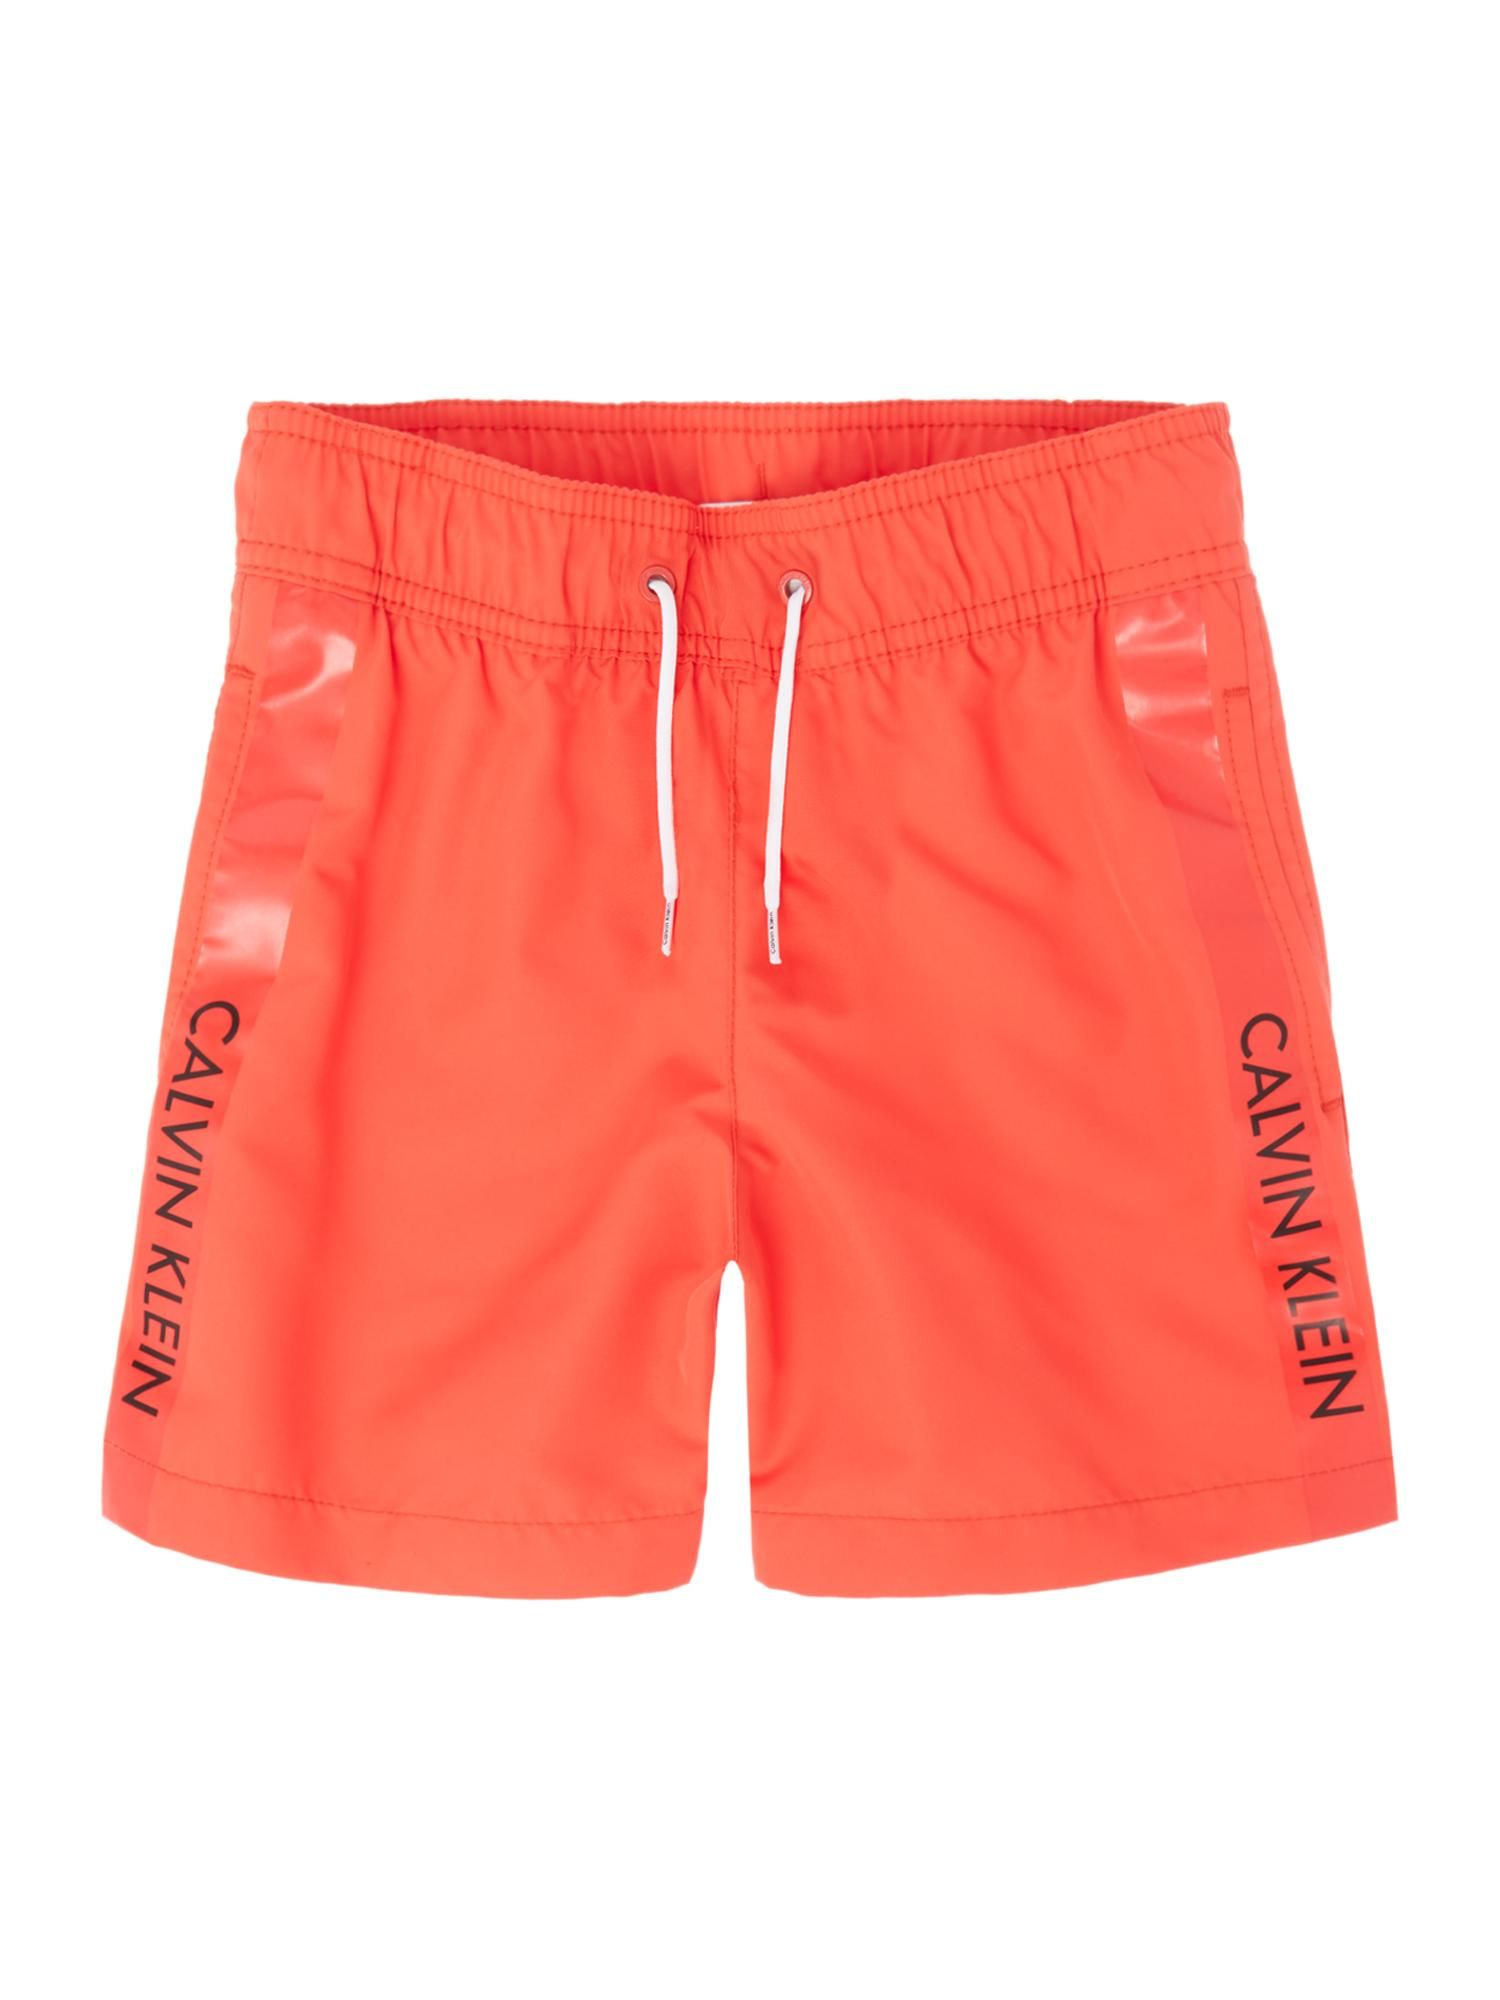 0486262d232 Buy your Calvin Klein Boys Drawstring Swim Shorts online now at House of  Fraser. Why not Buy and Collect in-store?